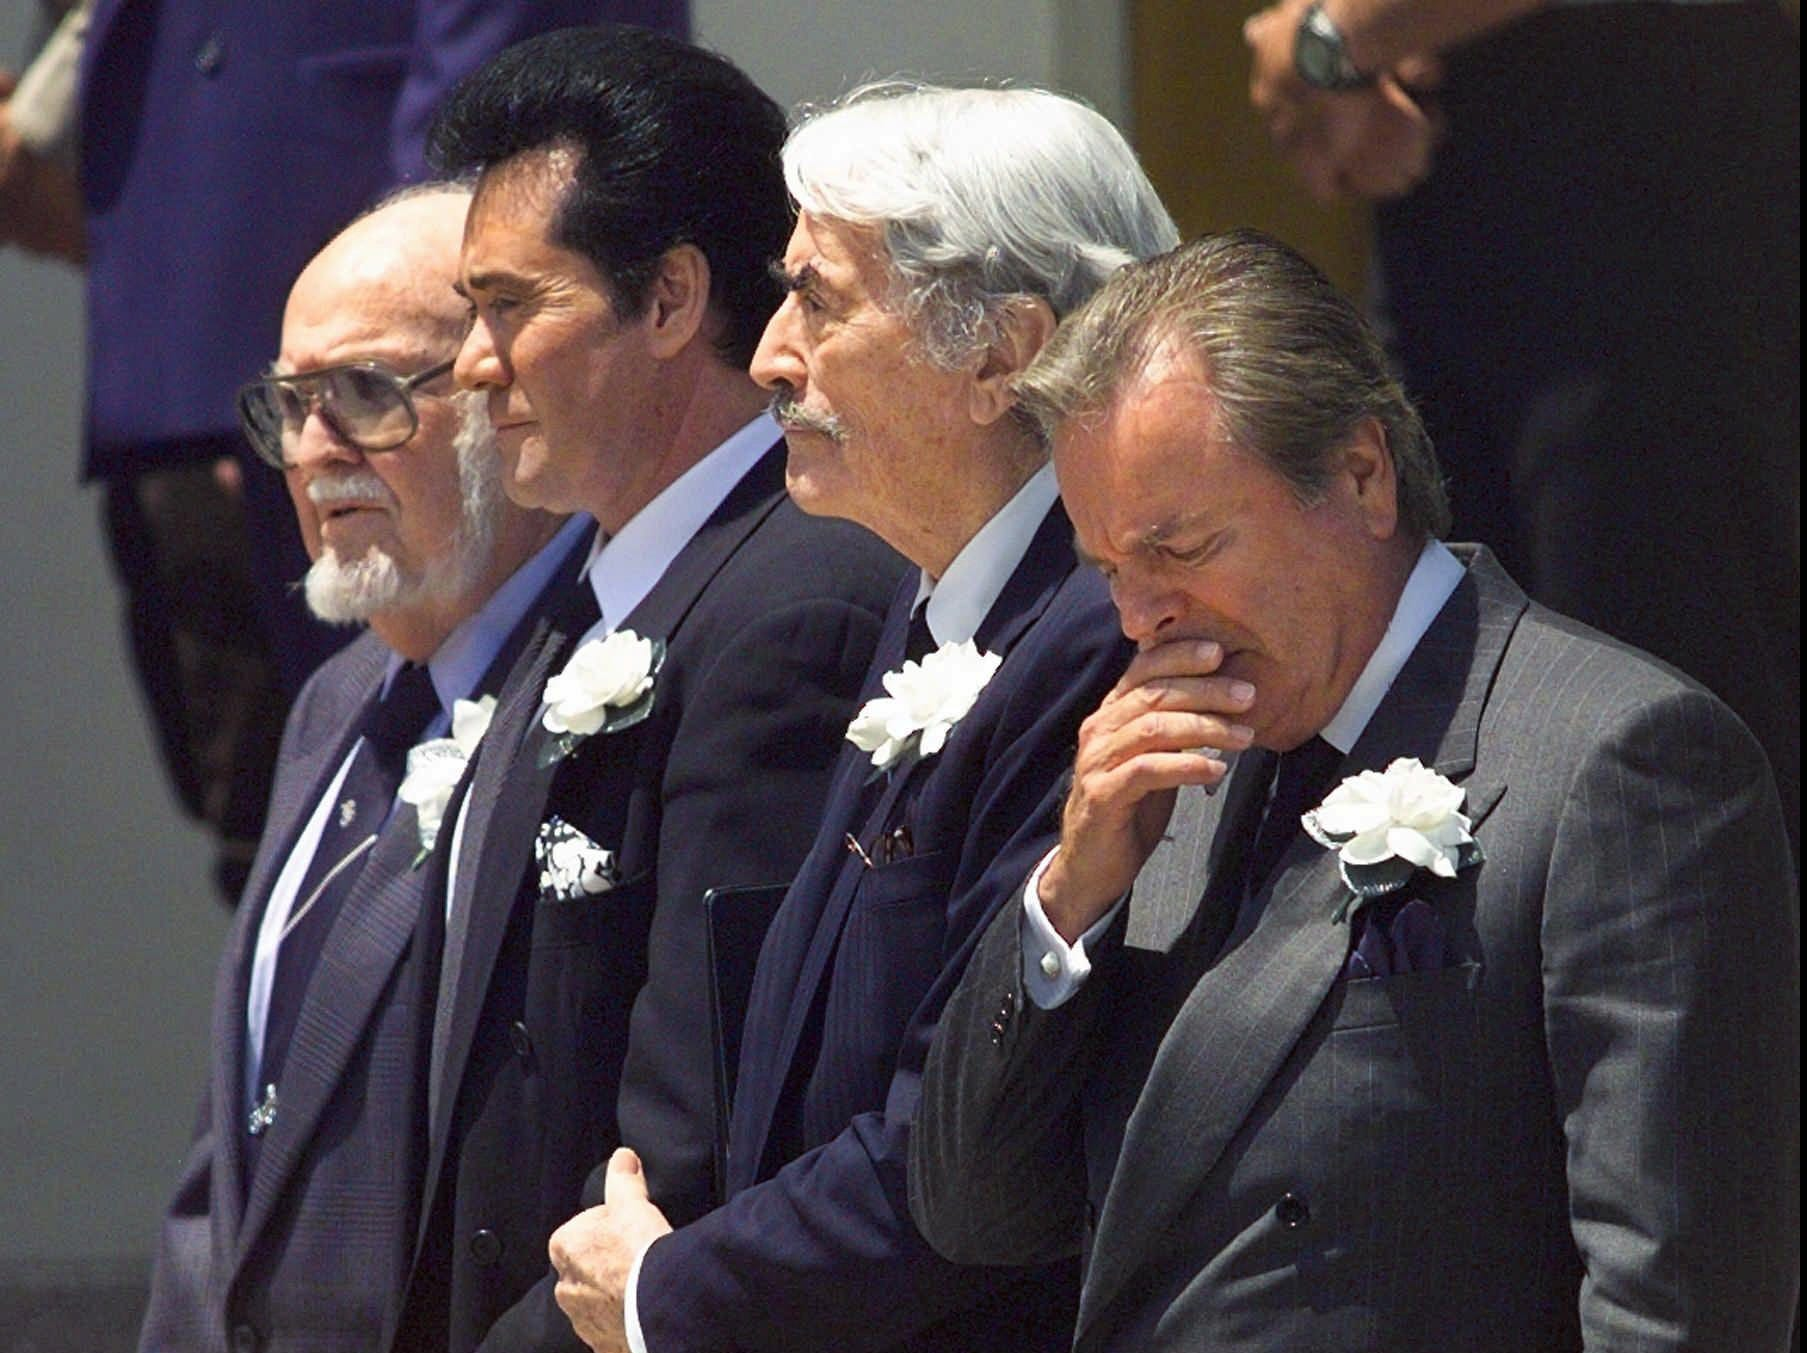 Honorary pallbearers (from right) Robert Wagner,Gregory Peck and Wayne Newton line up as the coffin of Frank Sinatra is carried from the Church of the Good Shepherd in Beverly Hills on Wednesday, May 20, 1998.